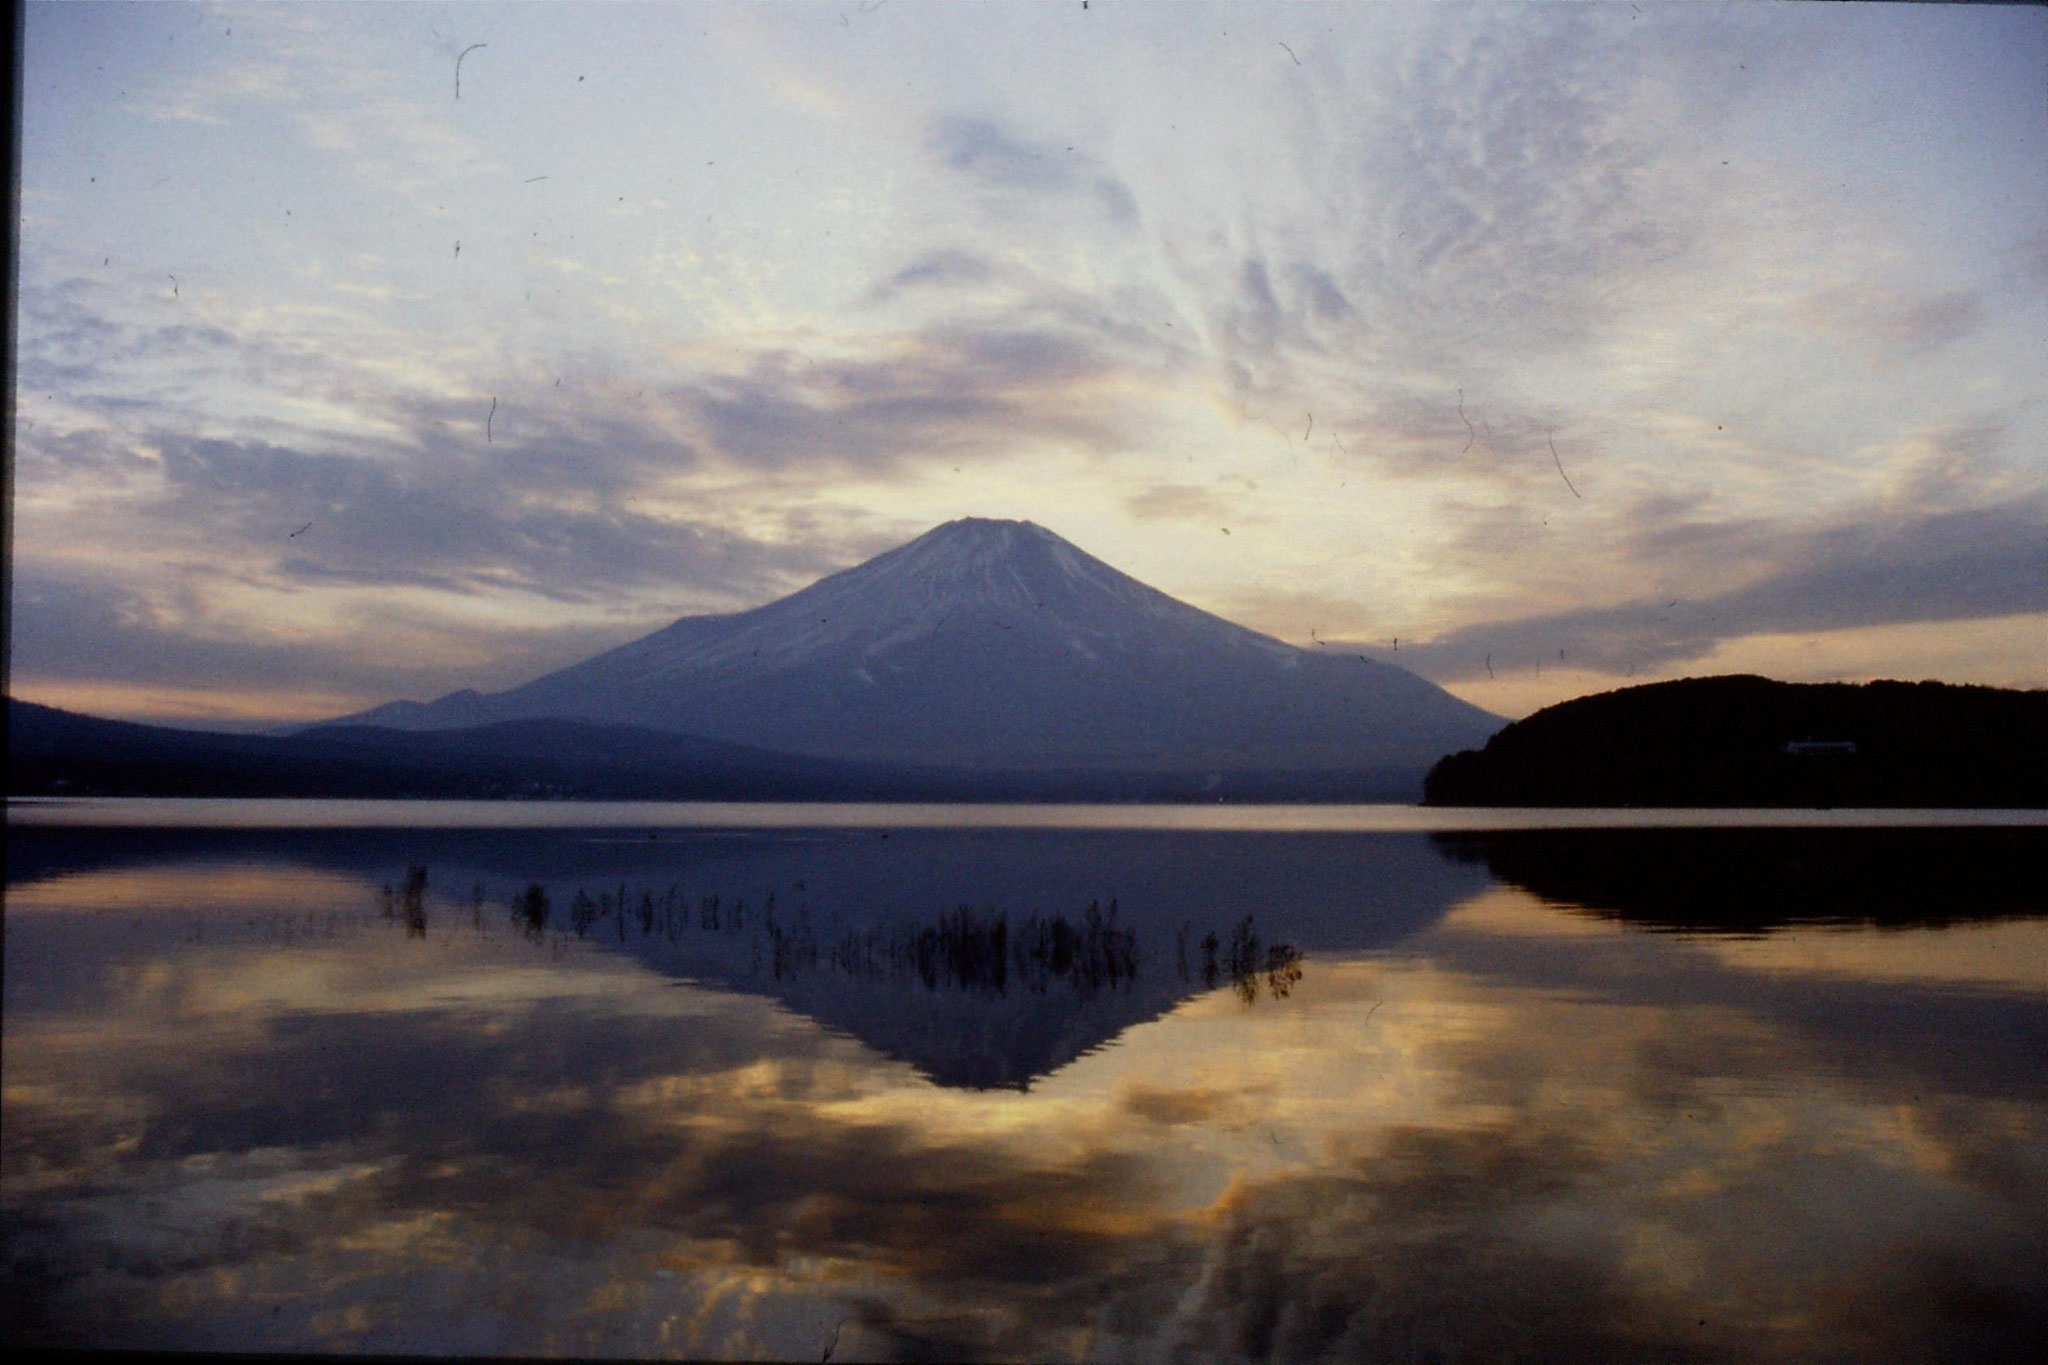 29/12/1988: 36: Mt Fuji region of Five Lakes